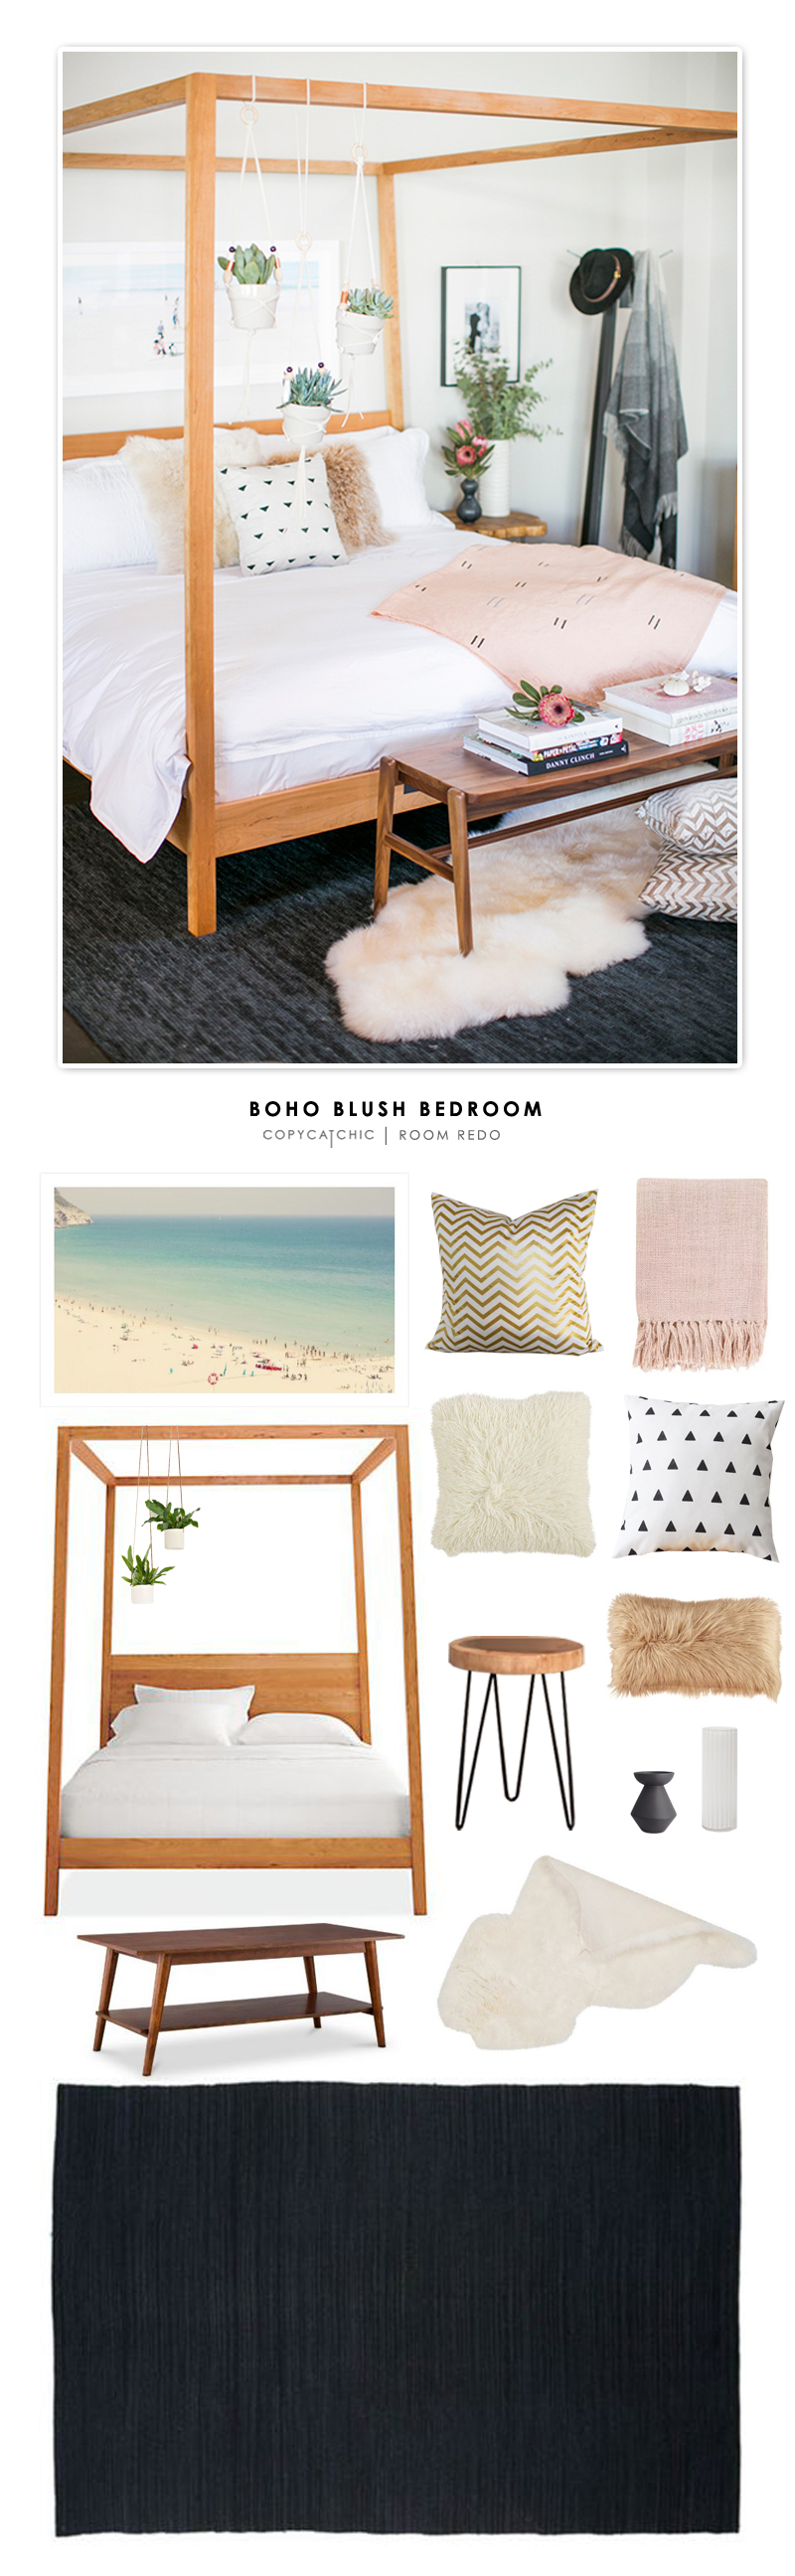 A Boho Blush Bedroom by Room and Board recreated for less by Copy Cat Chic